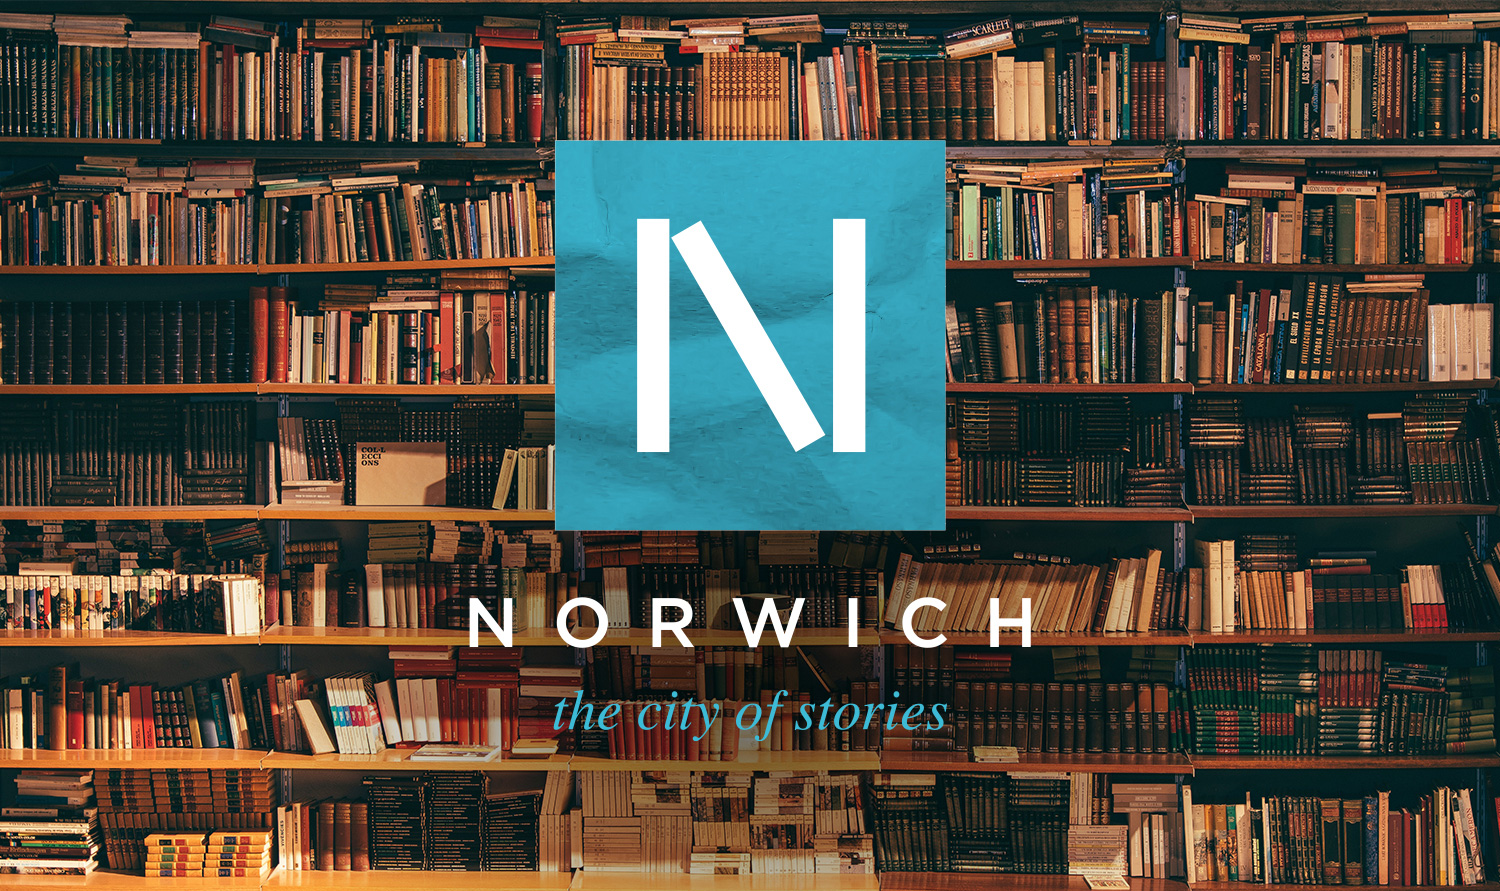 Norwich City of Stories logo